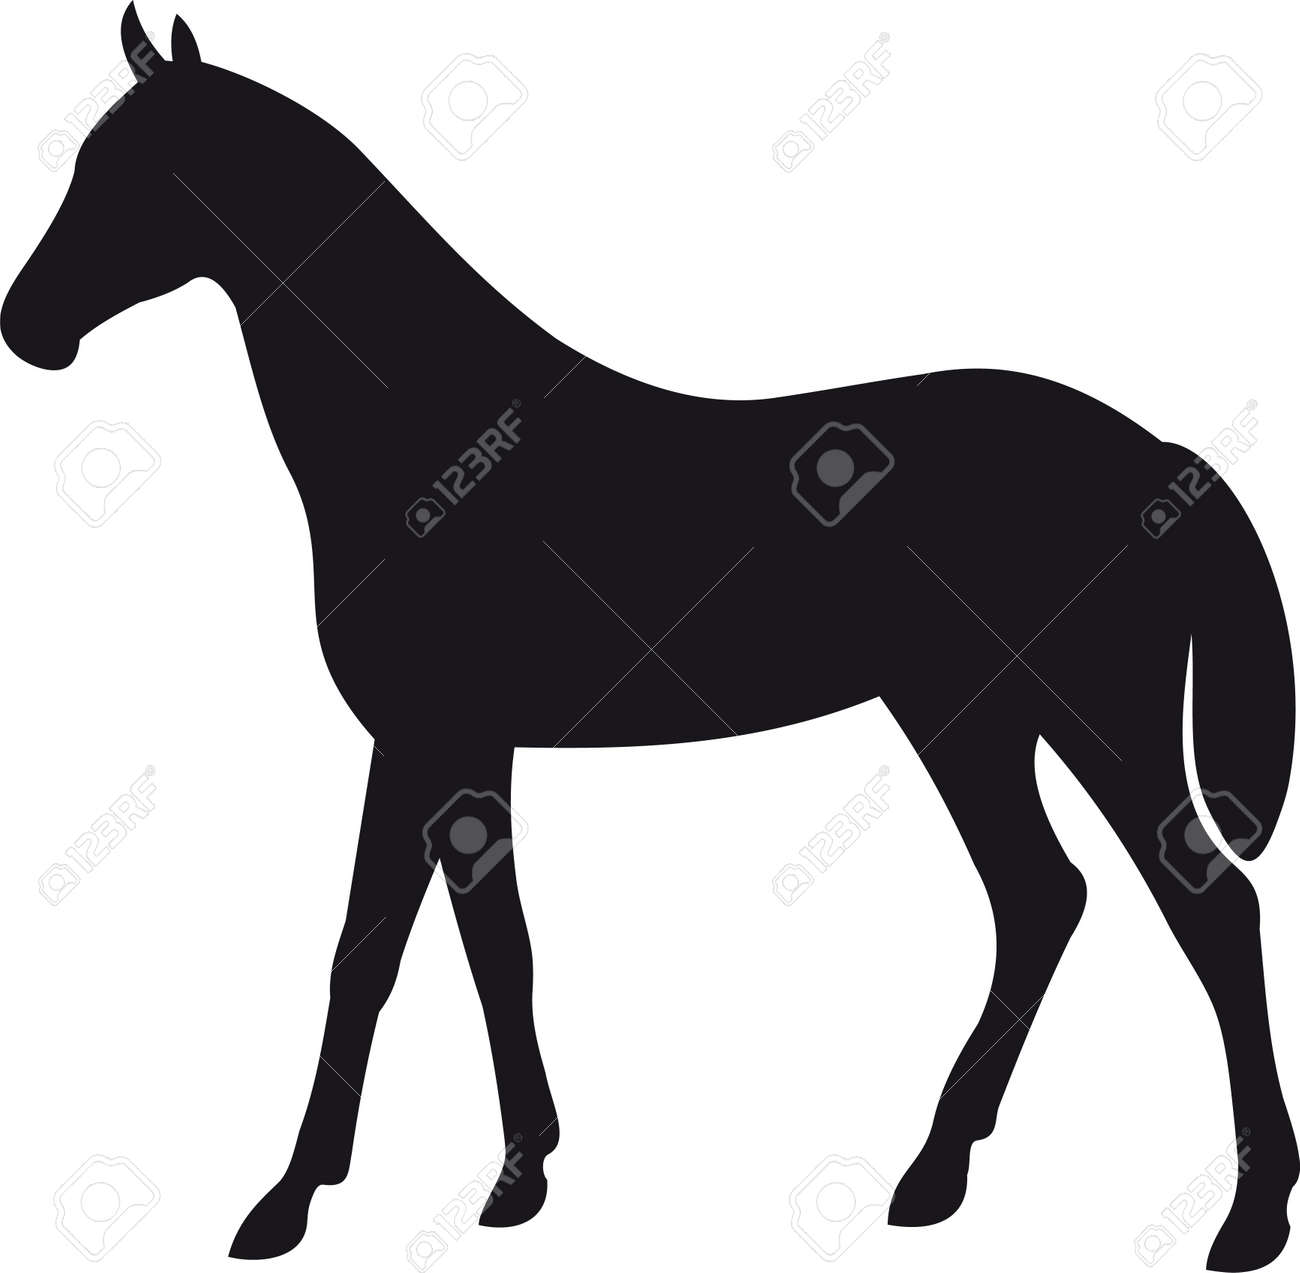 horse silhouette vector royalty free cliparts vectors and stock rh 123rf com horse jumping silhouette vector horse racing silhouette vector